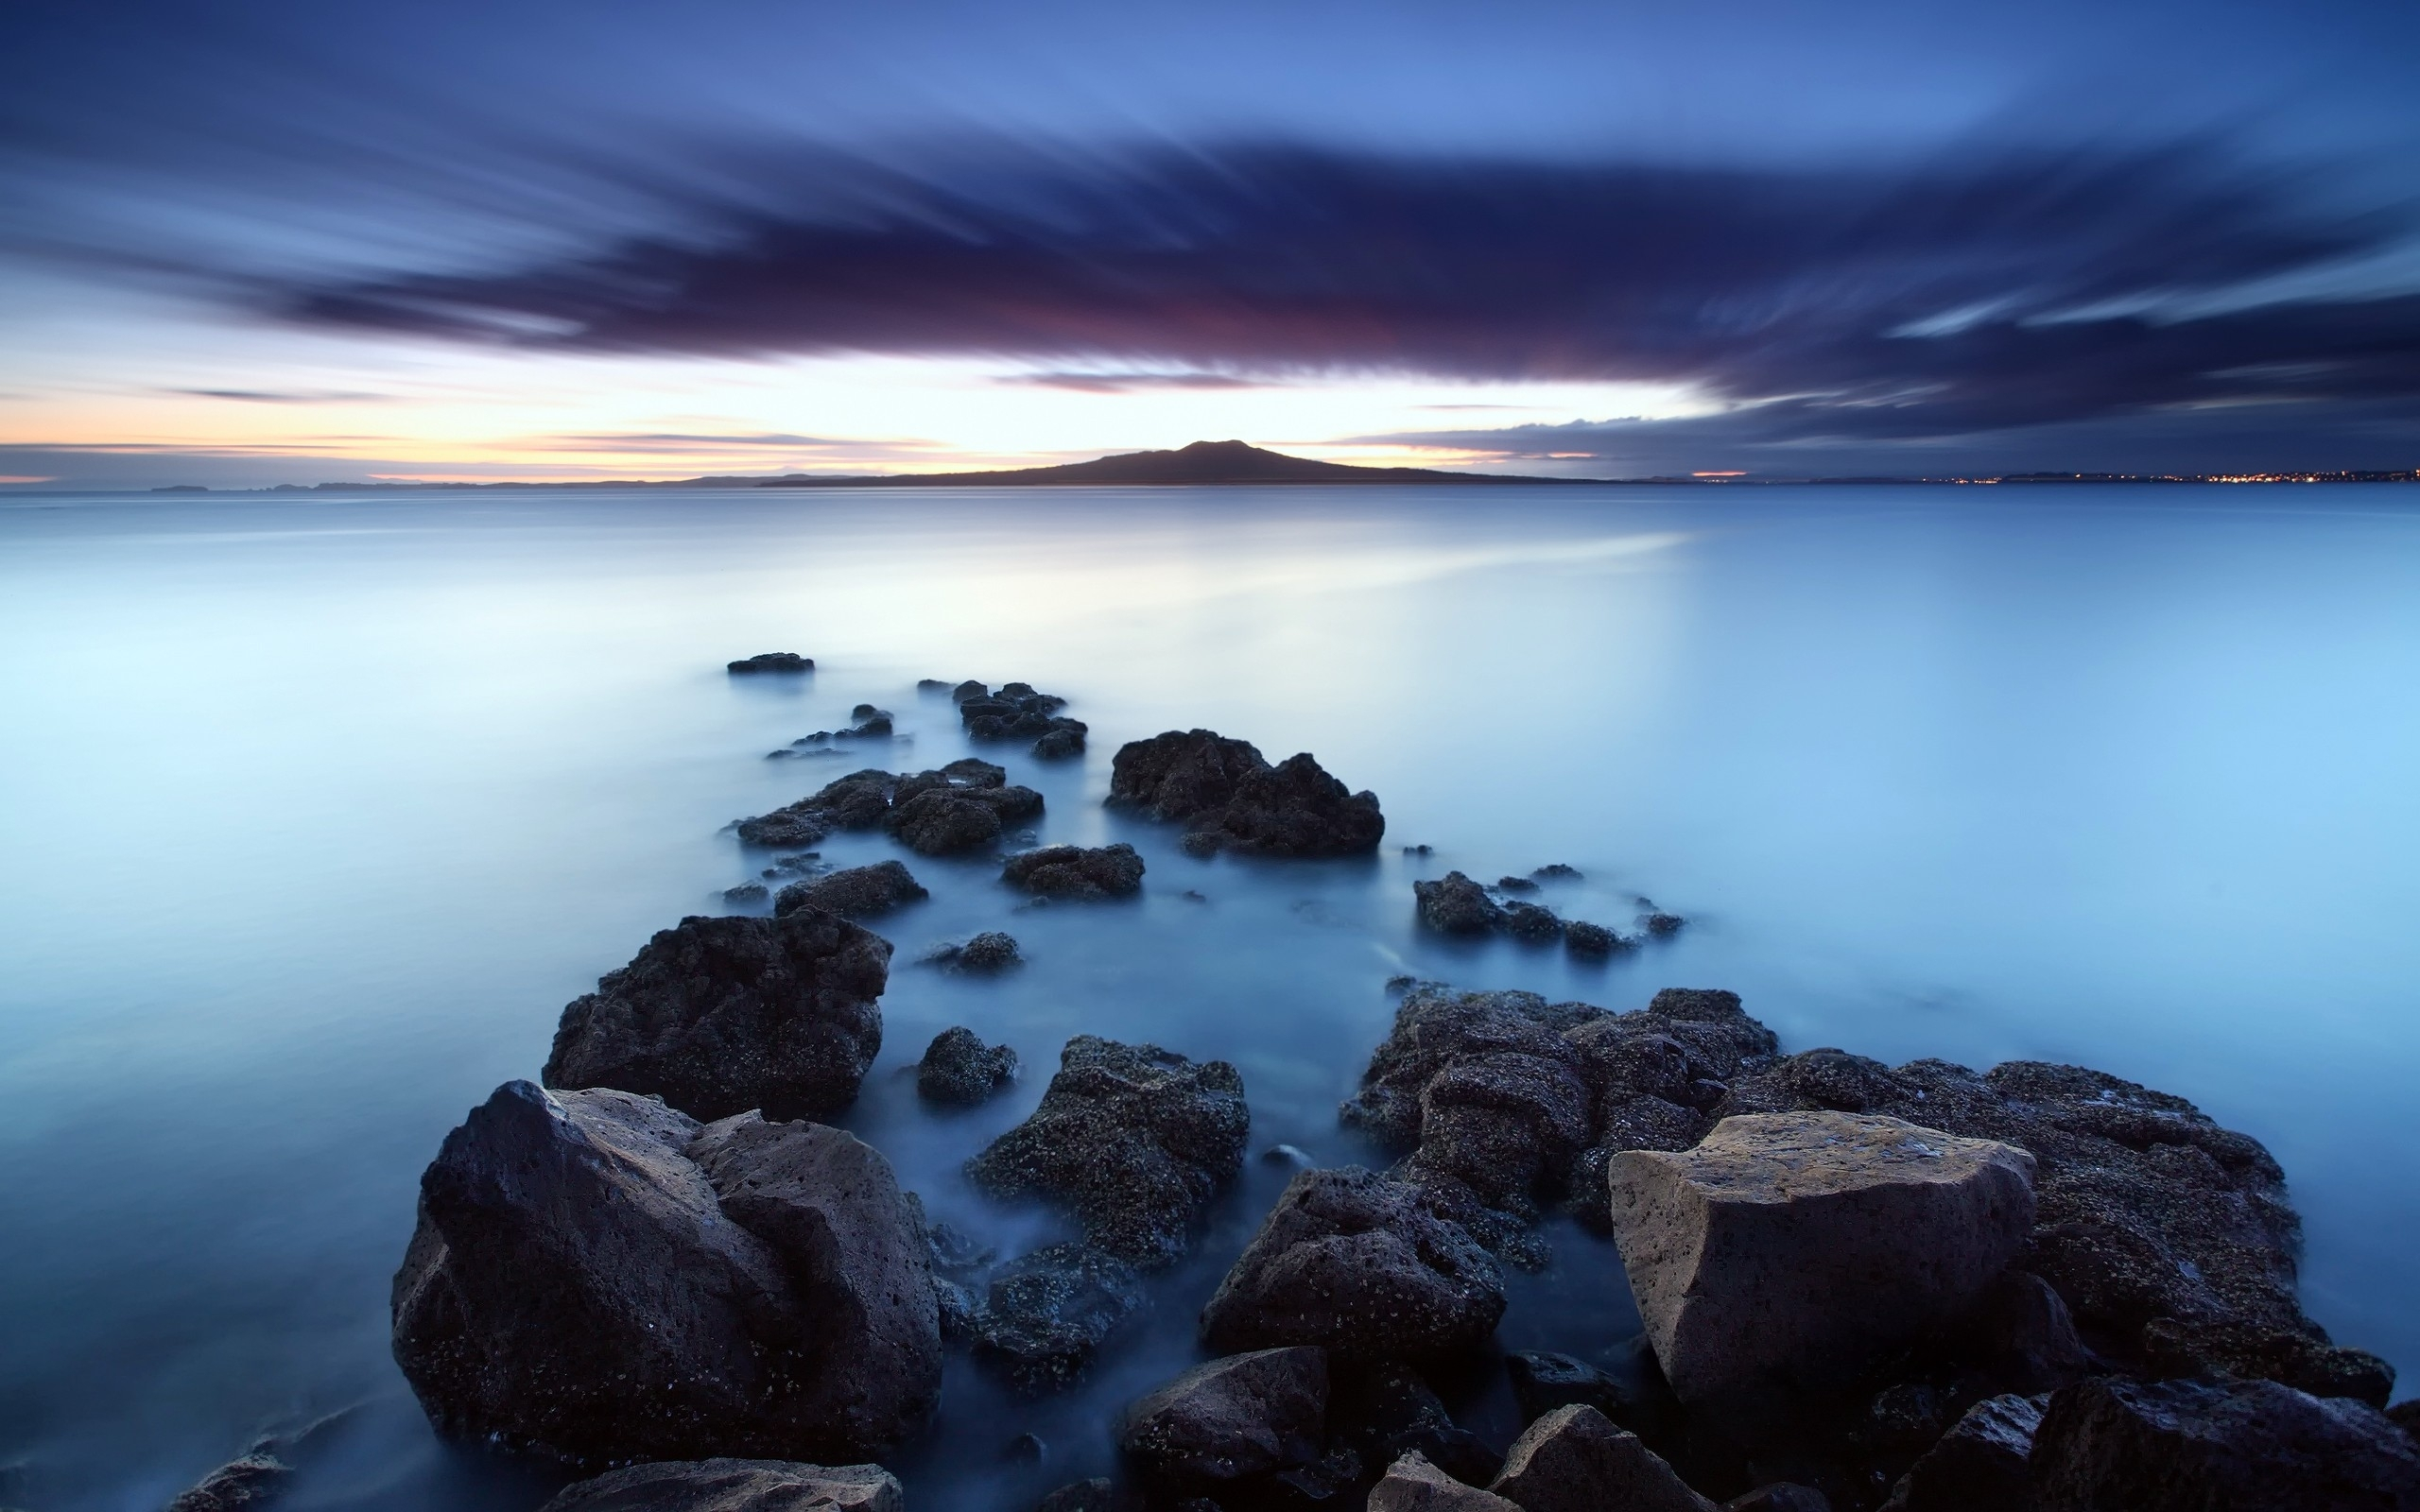 2560x1600 sky ocean & black stones desktop pc and mac wallpaper